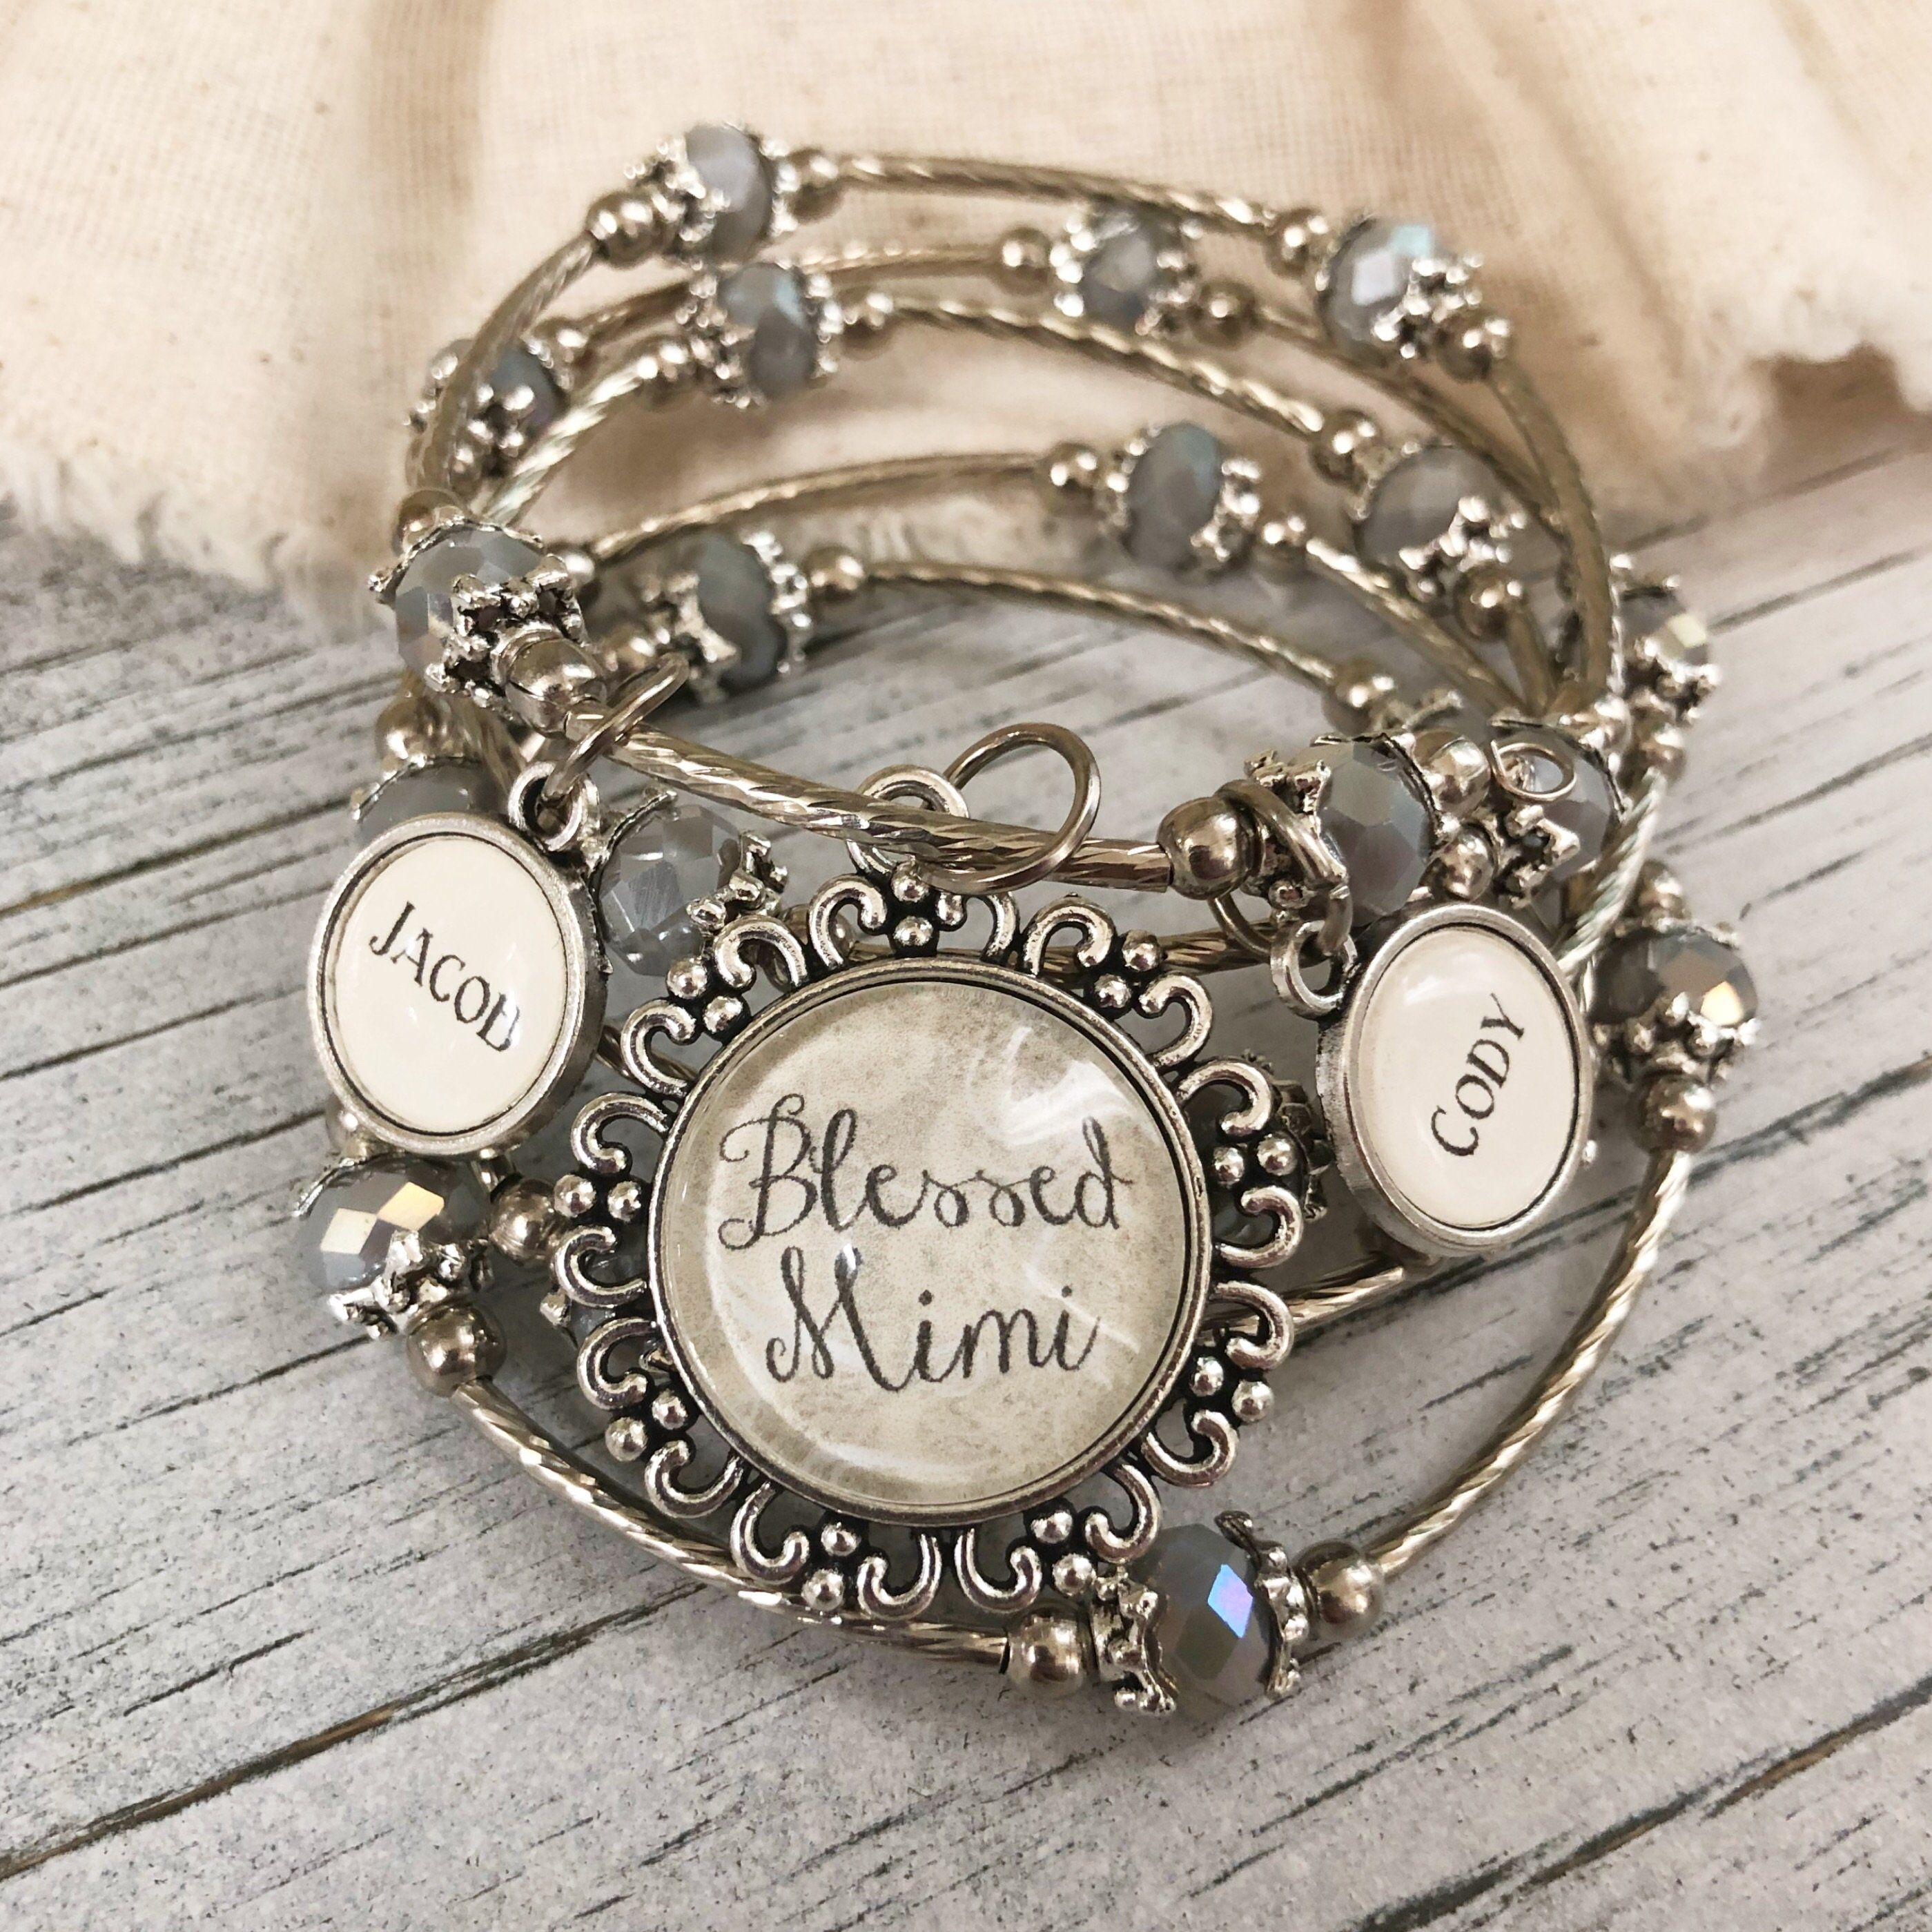 6 BLESSED Word Charms Silver Tone Metal